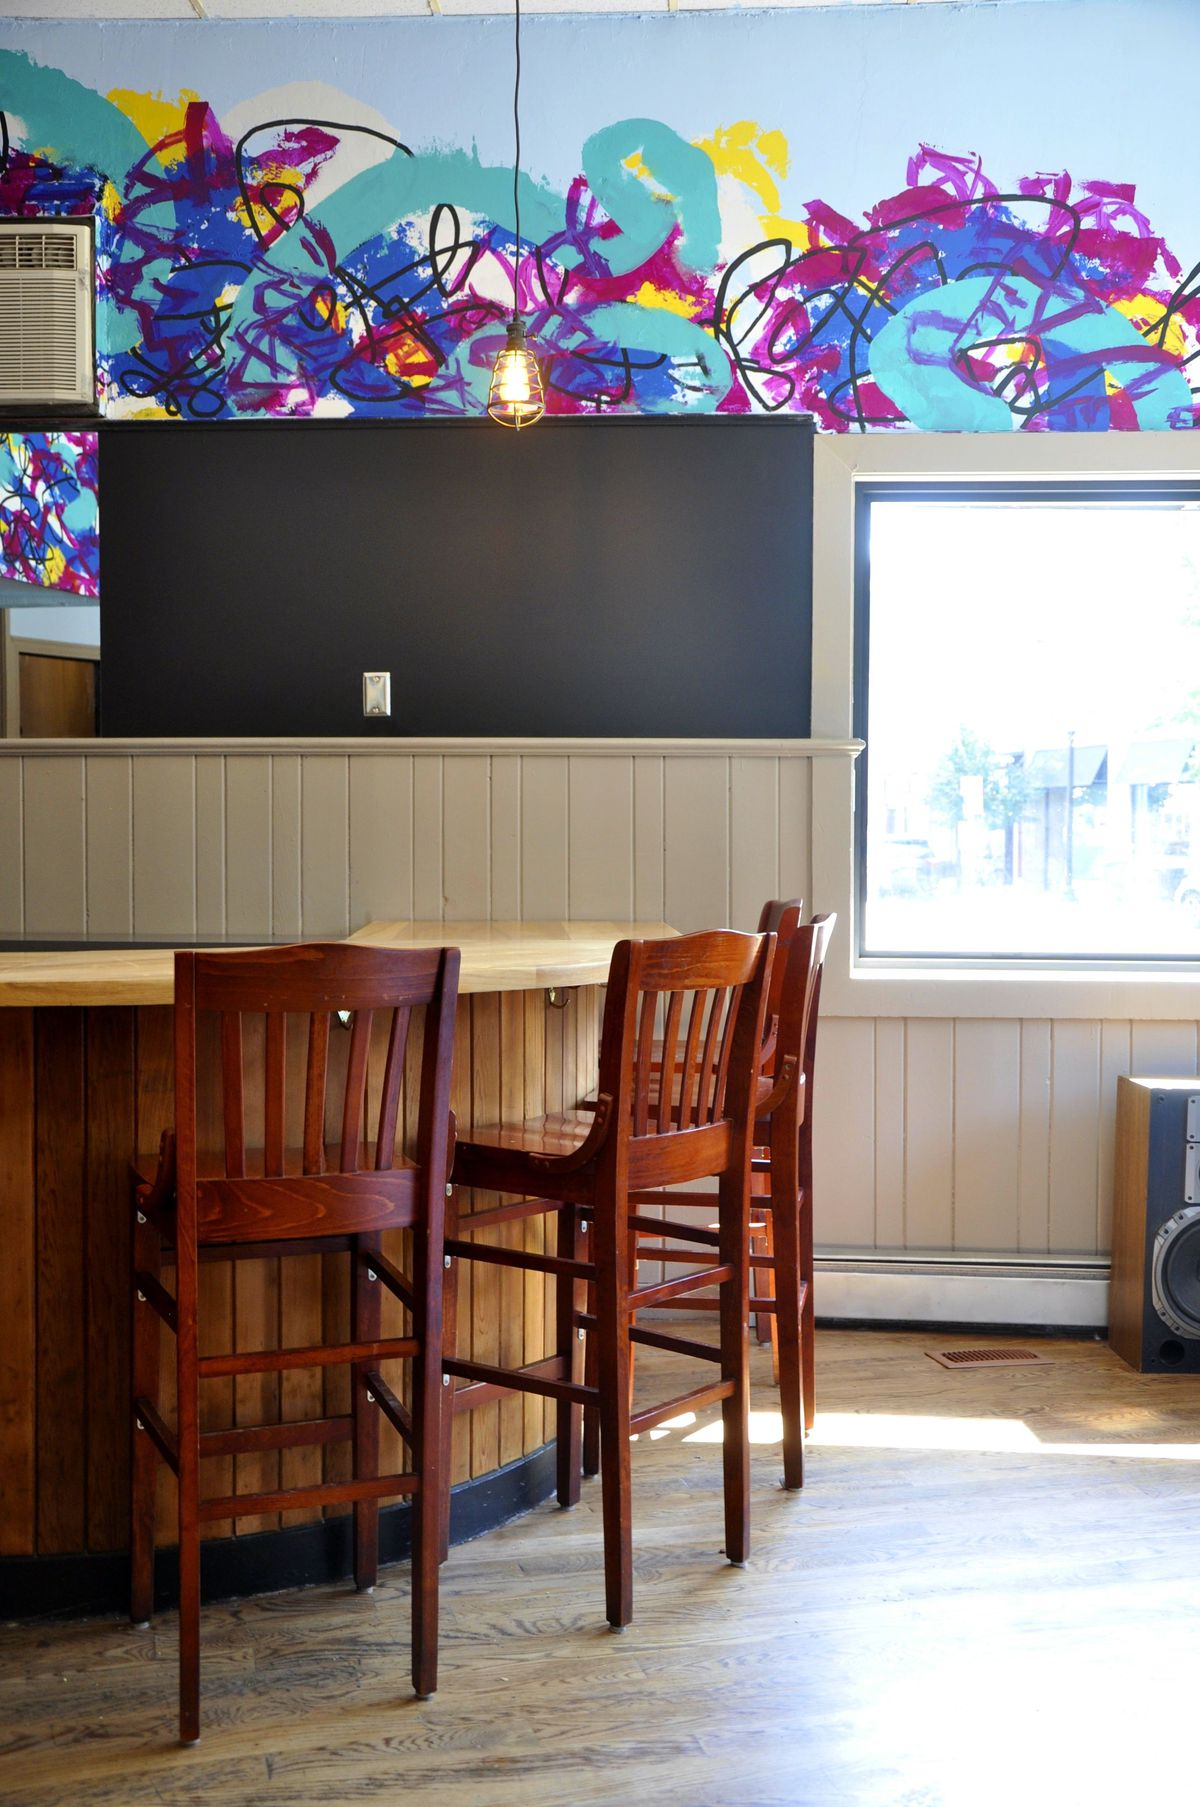 A wooden bar curves toward a wall painted black in part, with a colorful mural overhead